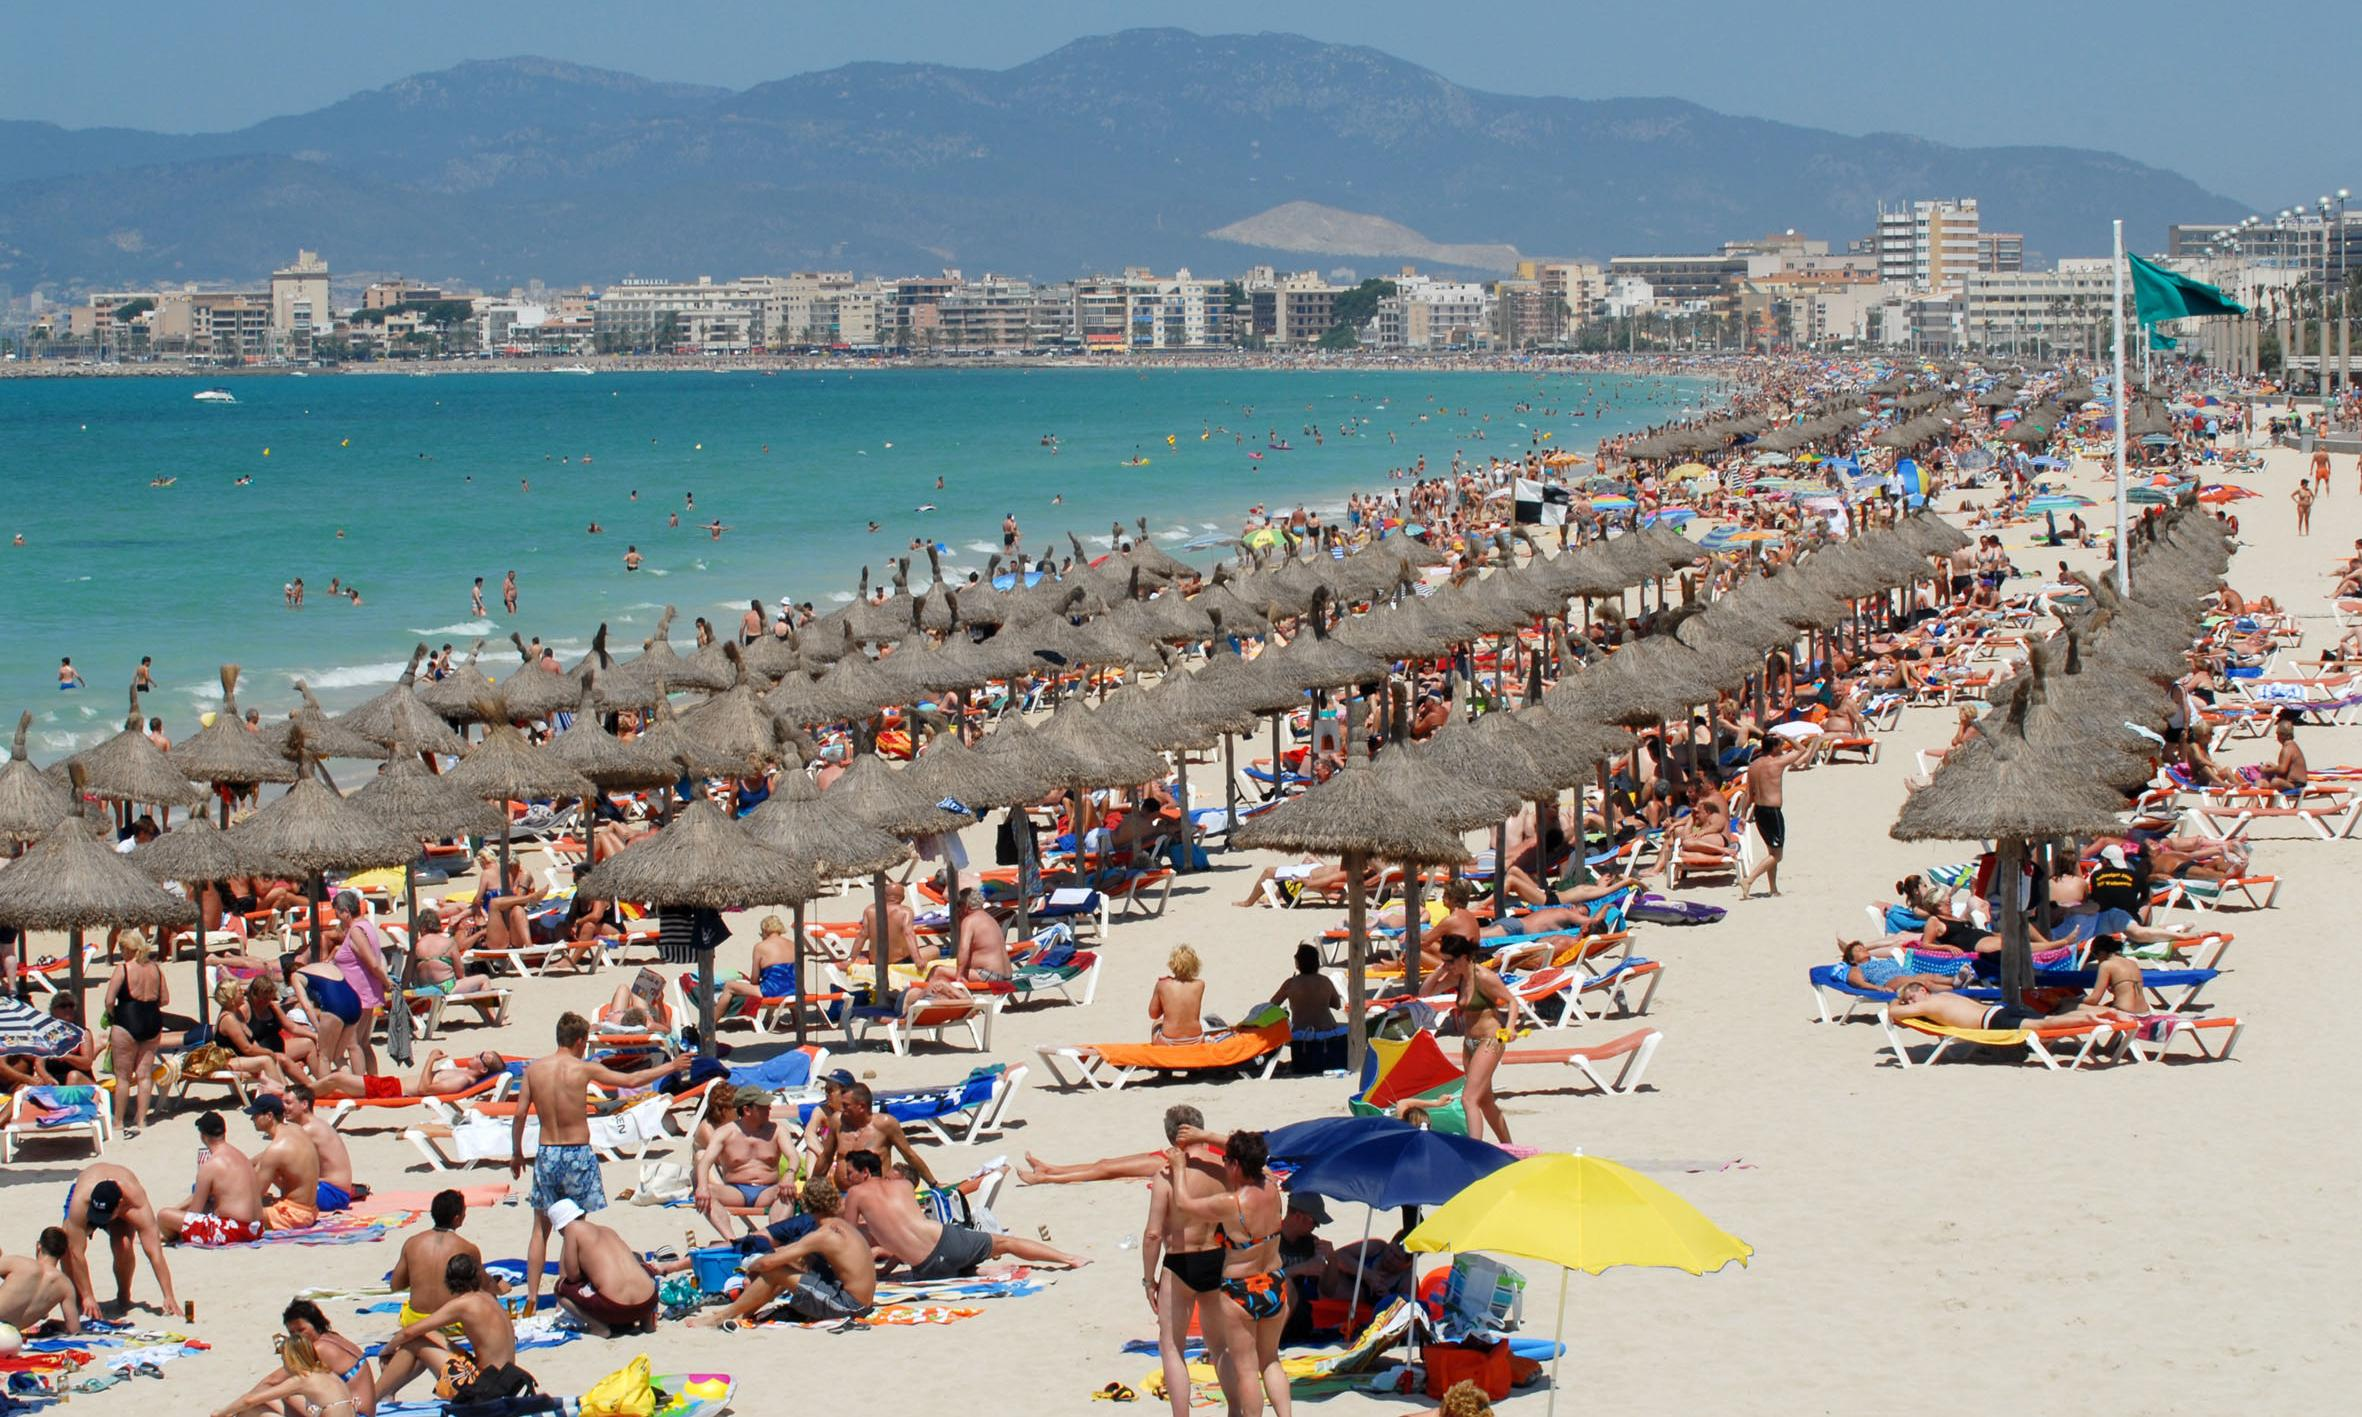 The climate crisis must mean the end of British summer holidays in Spain